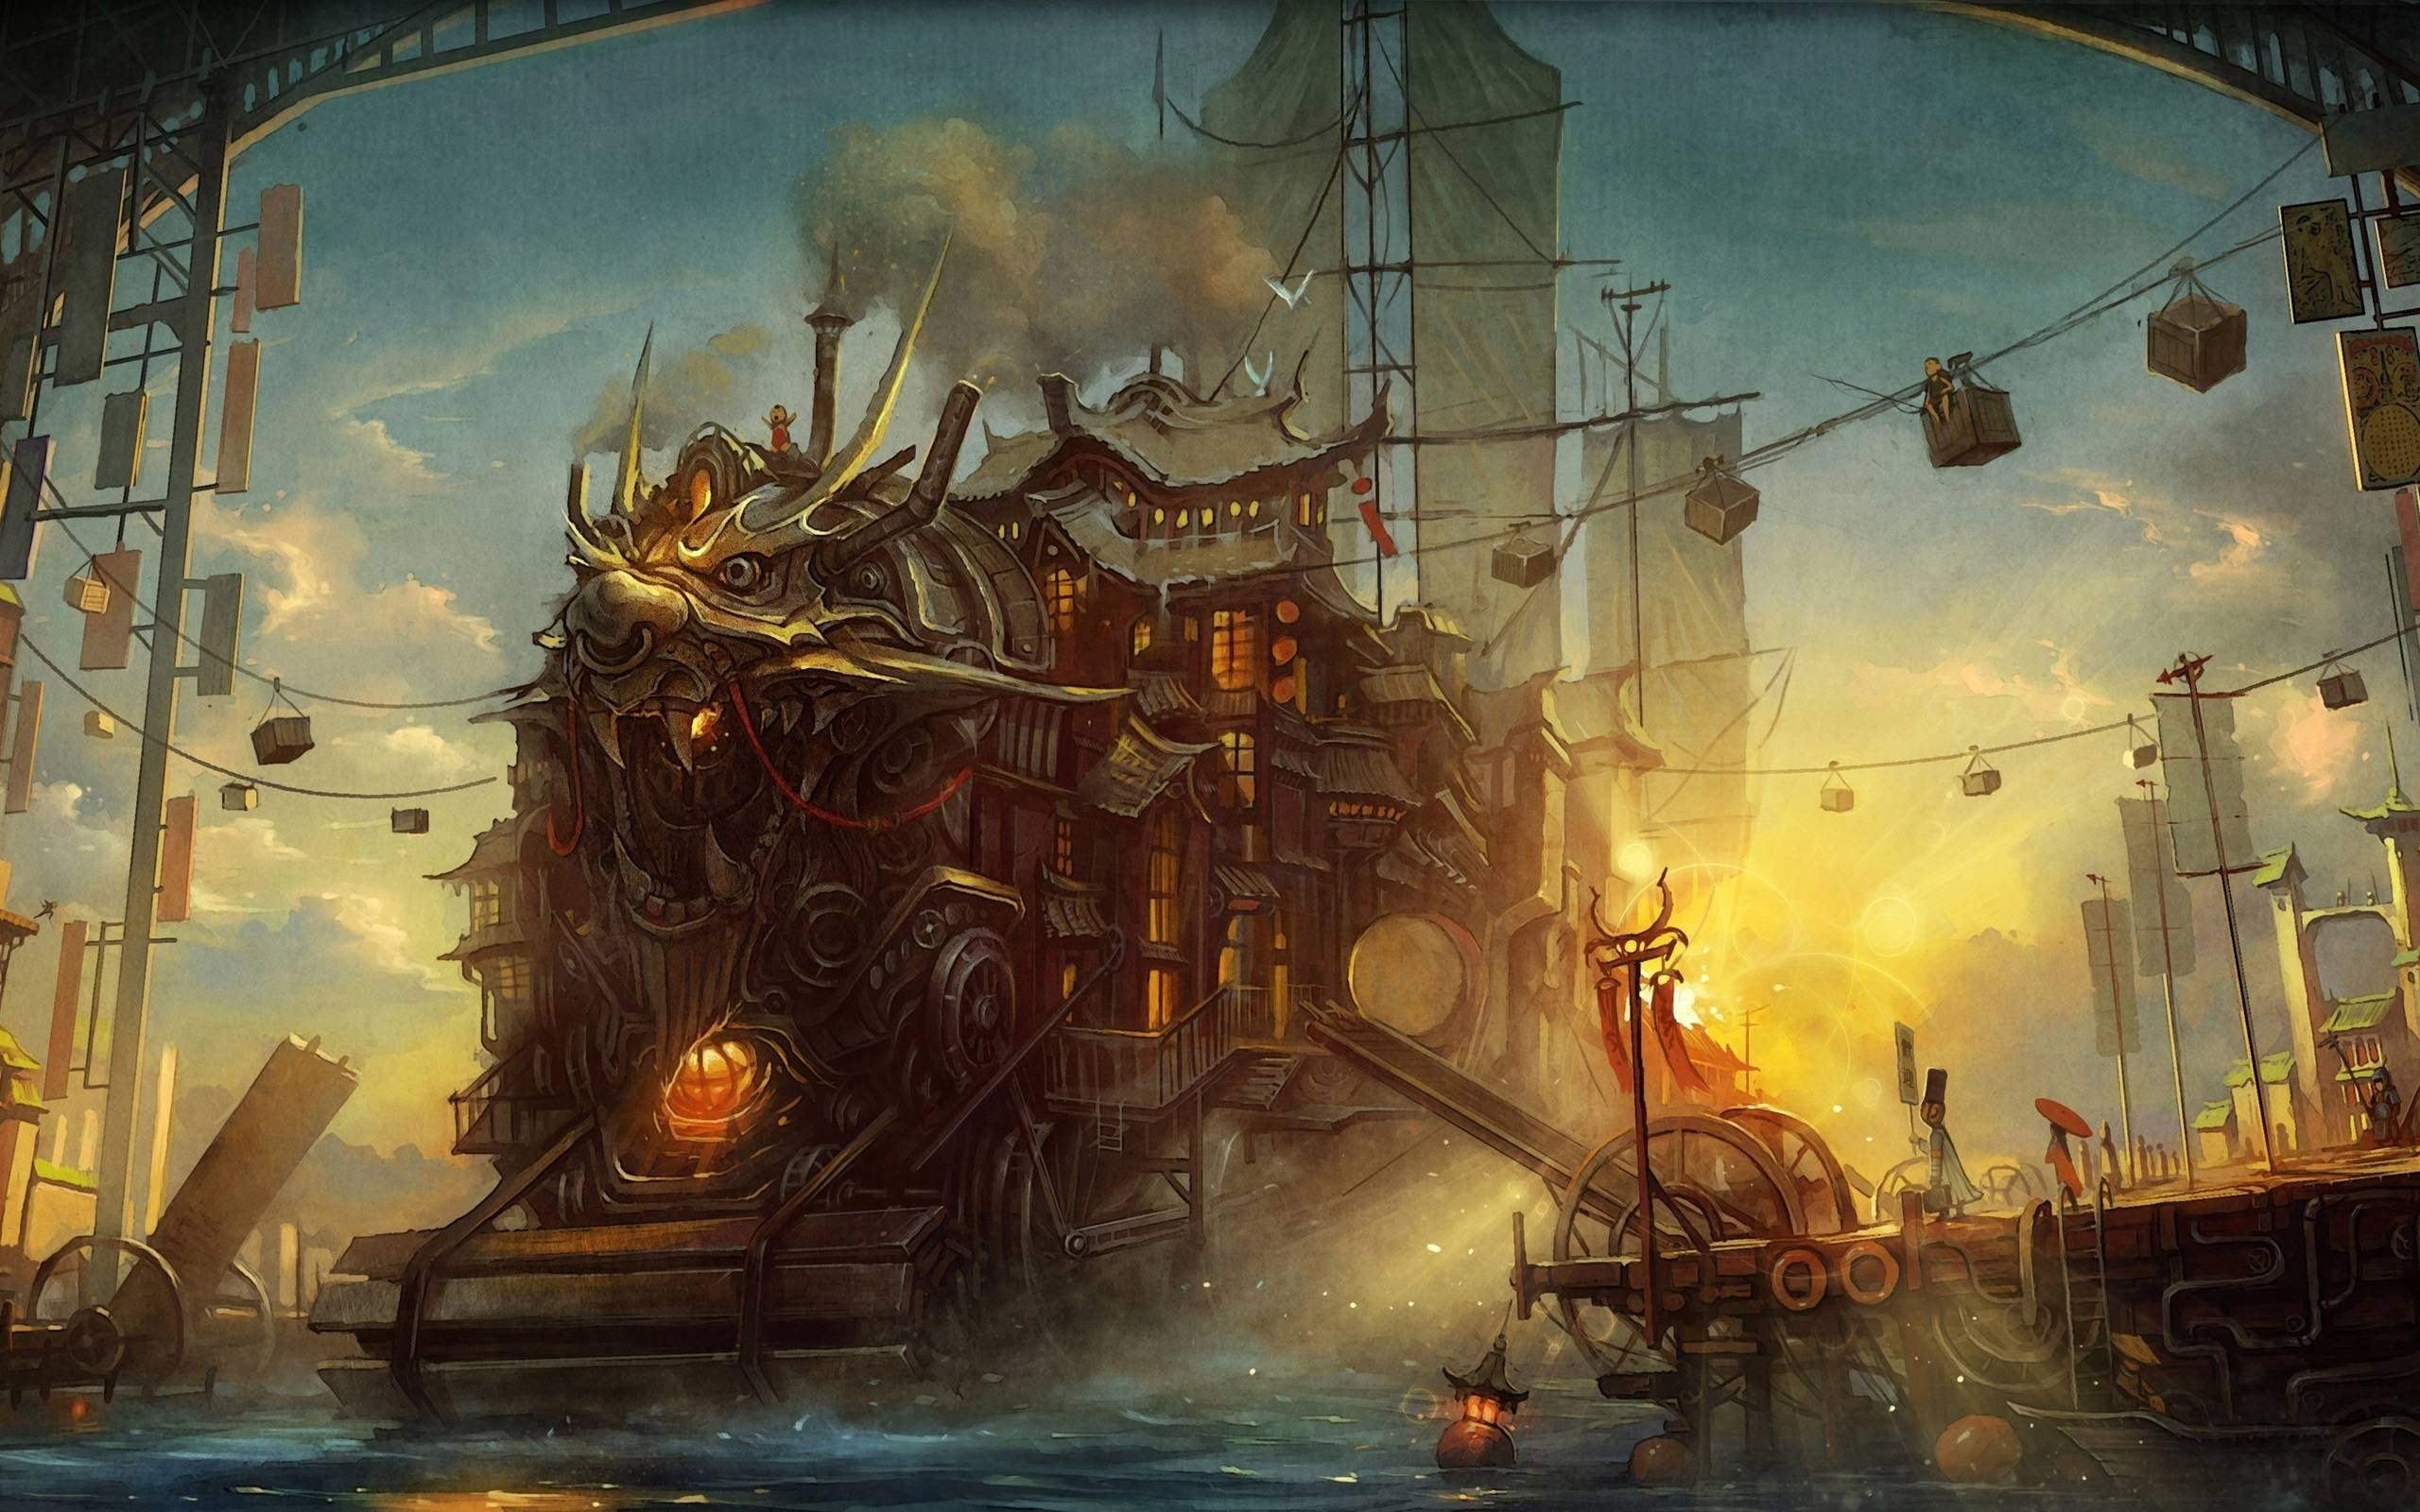 Steampunk Wallpapers 4997 2560x1600 px